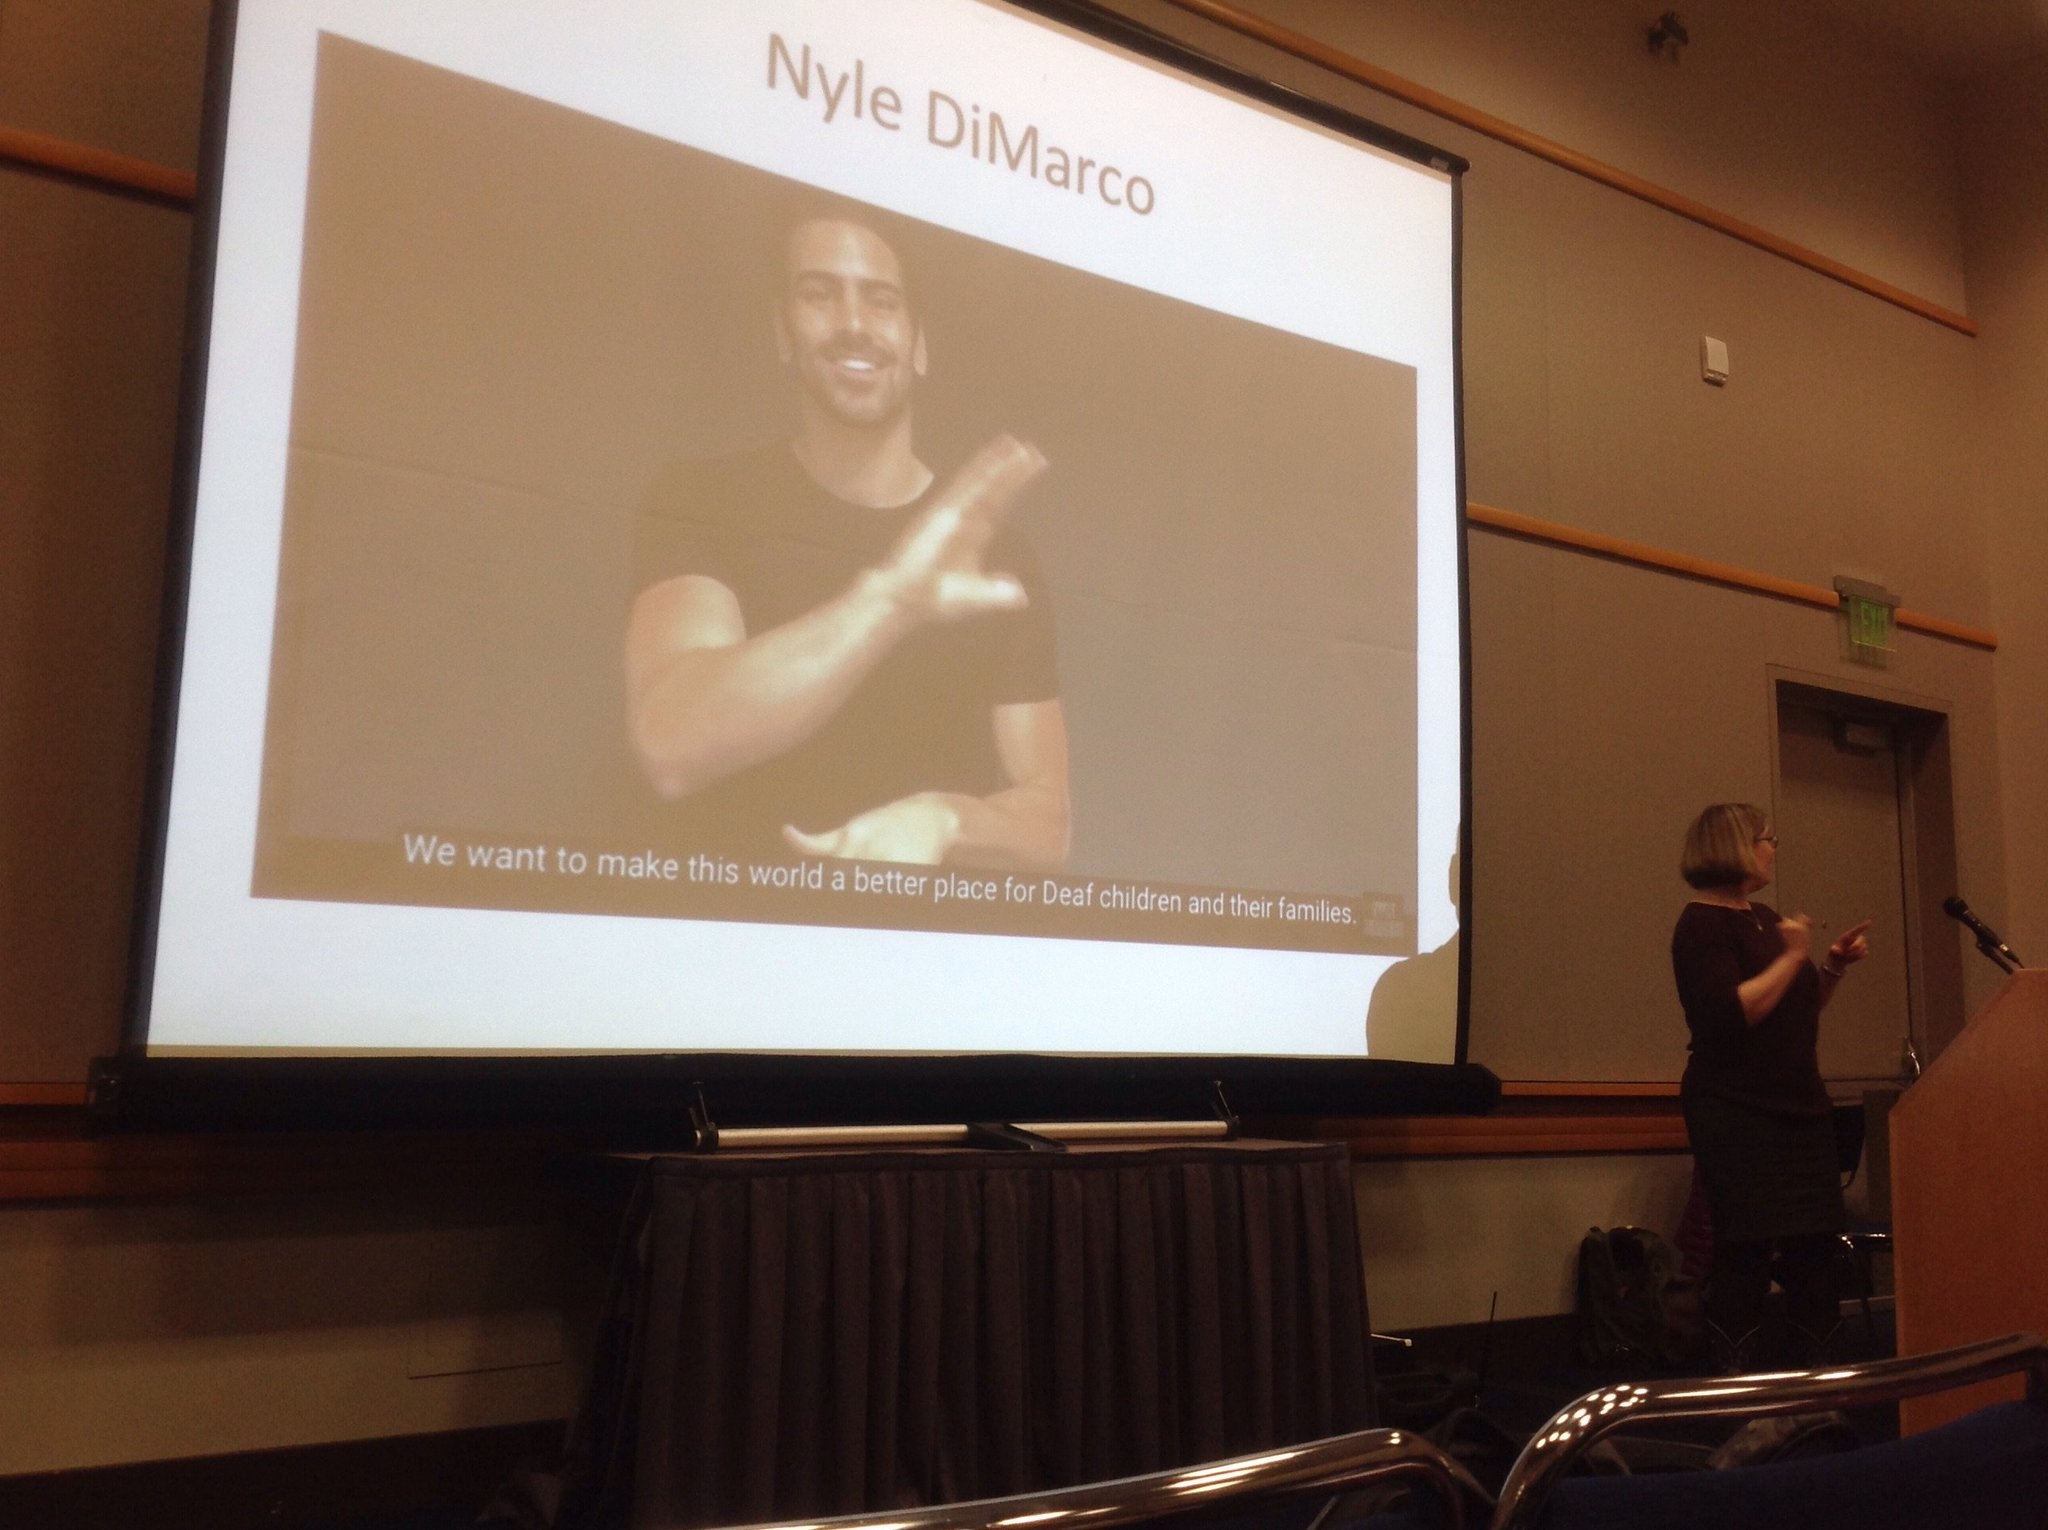 .@TonyaStremlau speaks to Nyle DiMarco fame. And the crowd approves. #dis #b47 #4C17 https://t.co/UleD4lAy5l